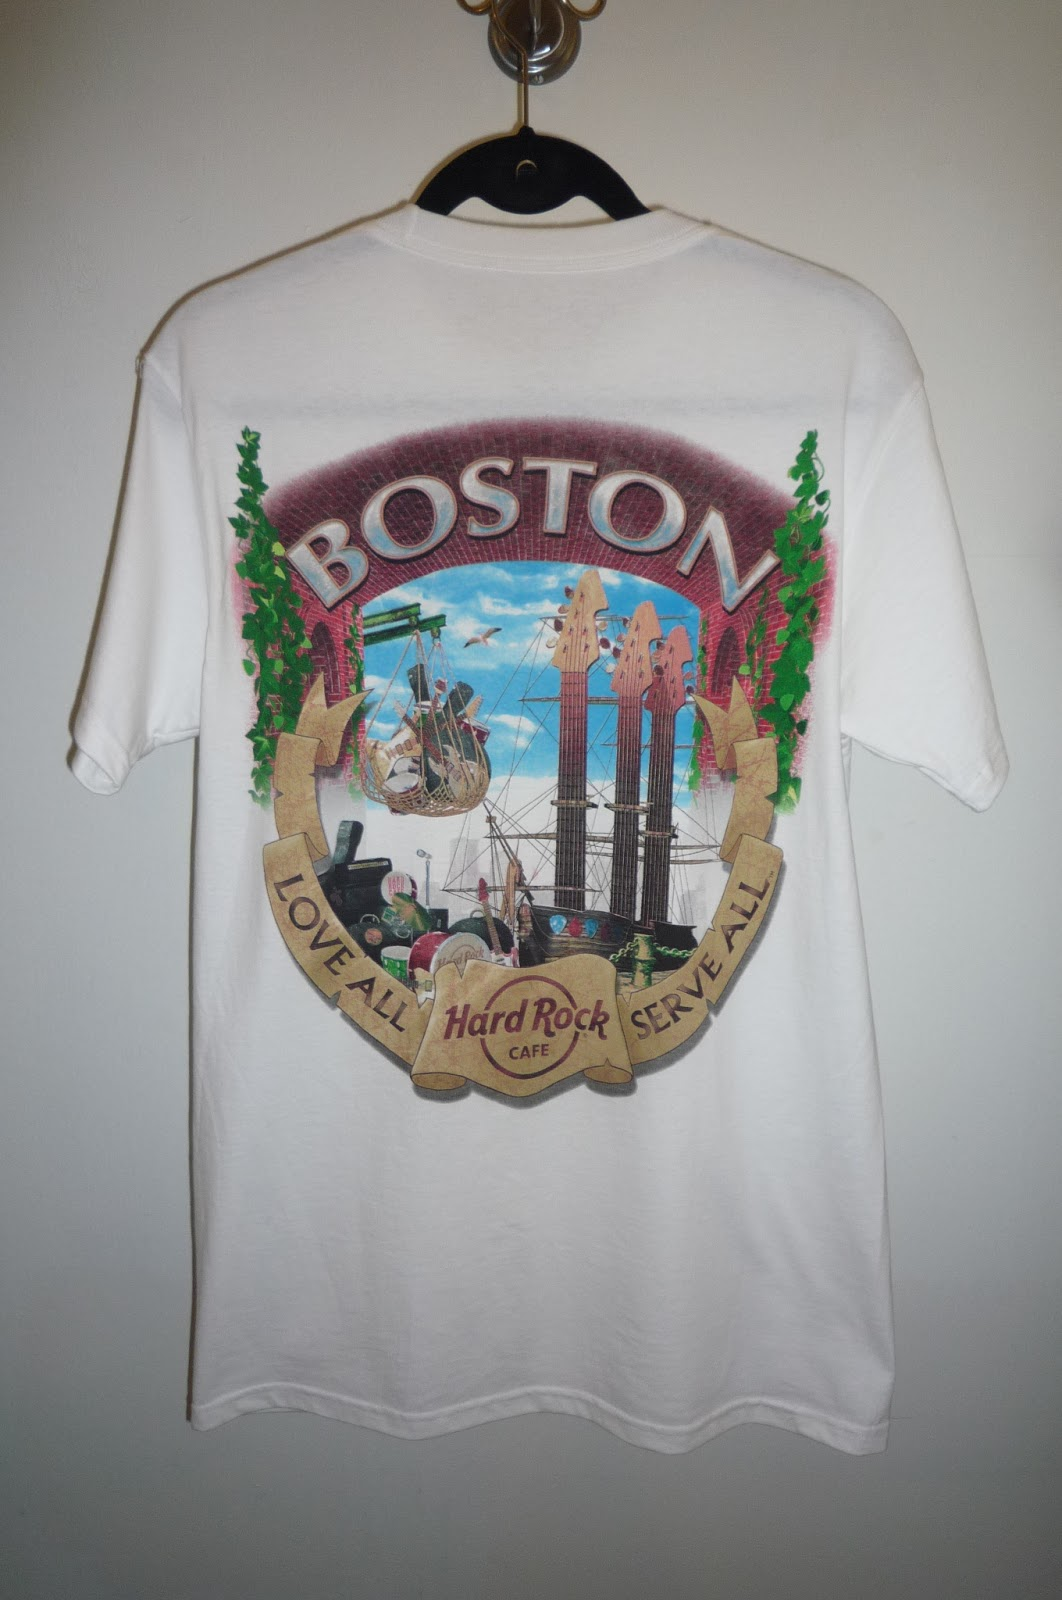 busybeeroom welcomes you hard rock cafe boston t shirt. Black Bedroom Furniture Sets. Home Design Ideas